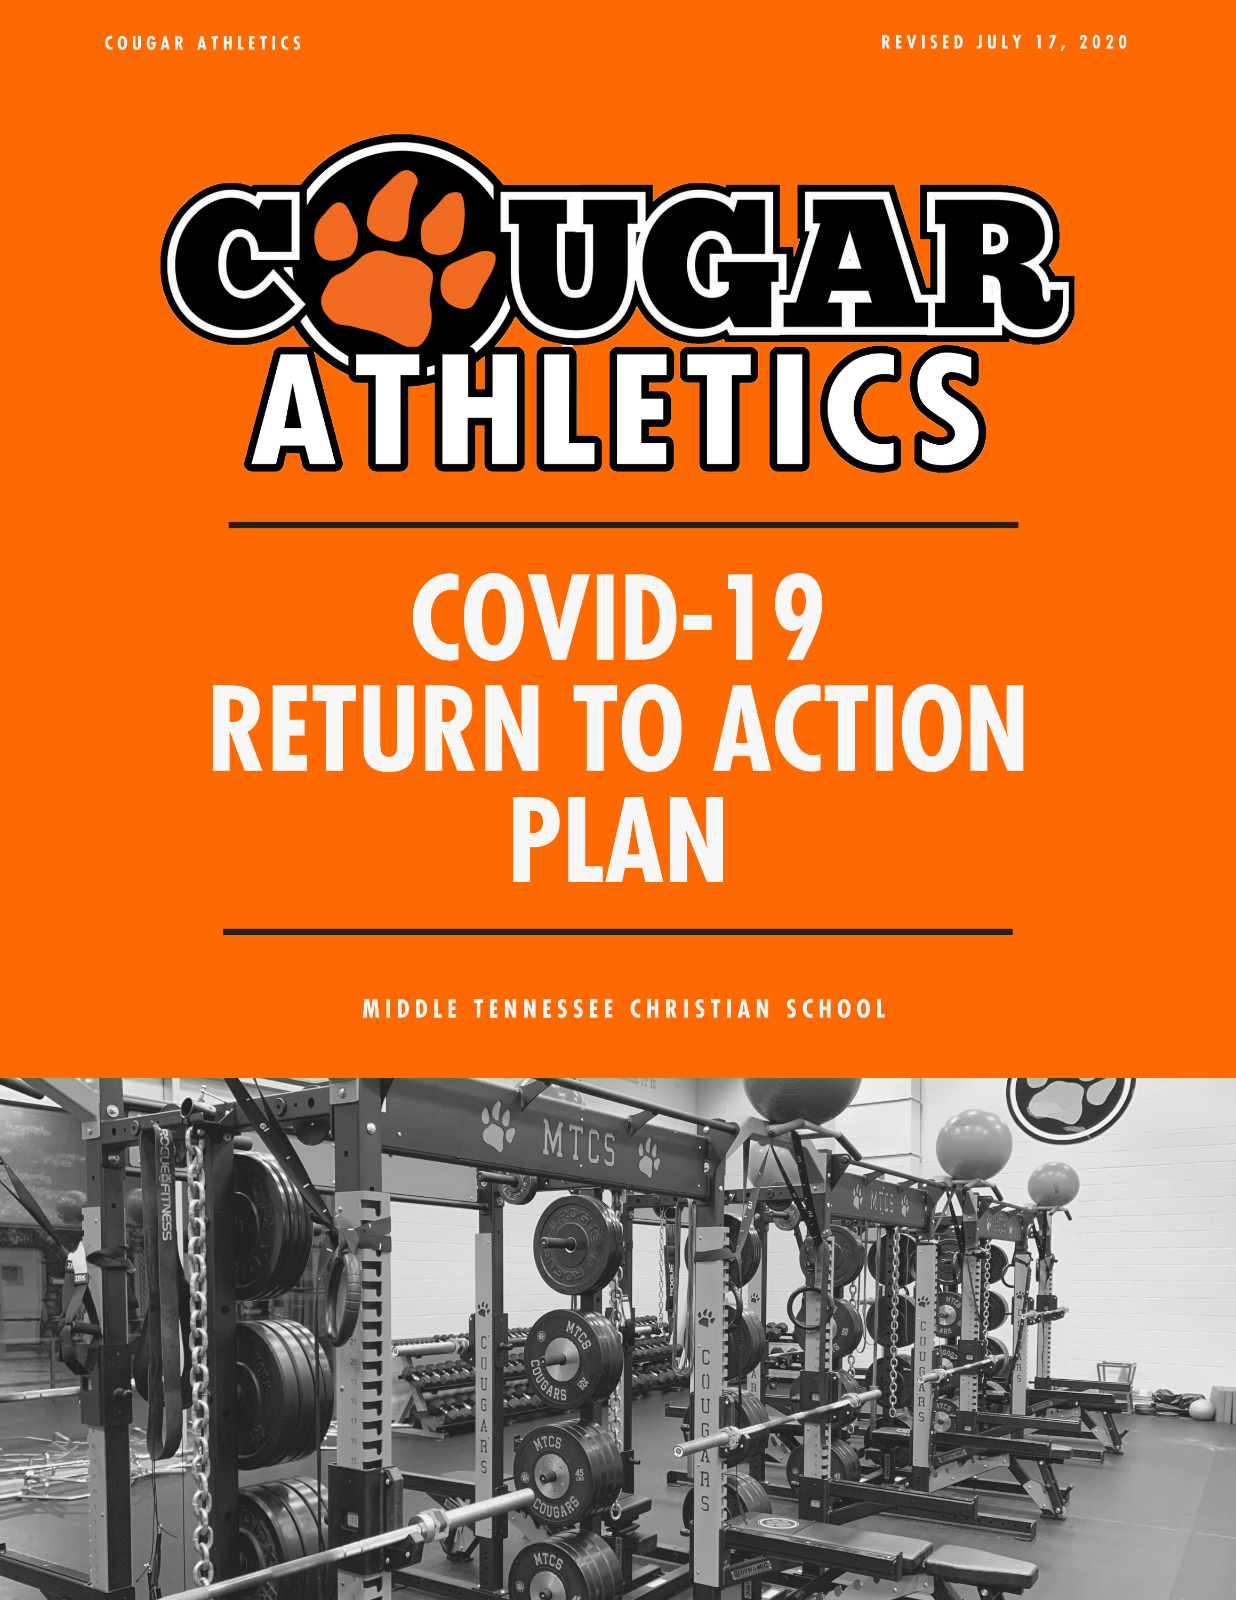 Covid-19 Return to Action Plan